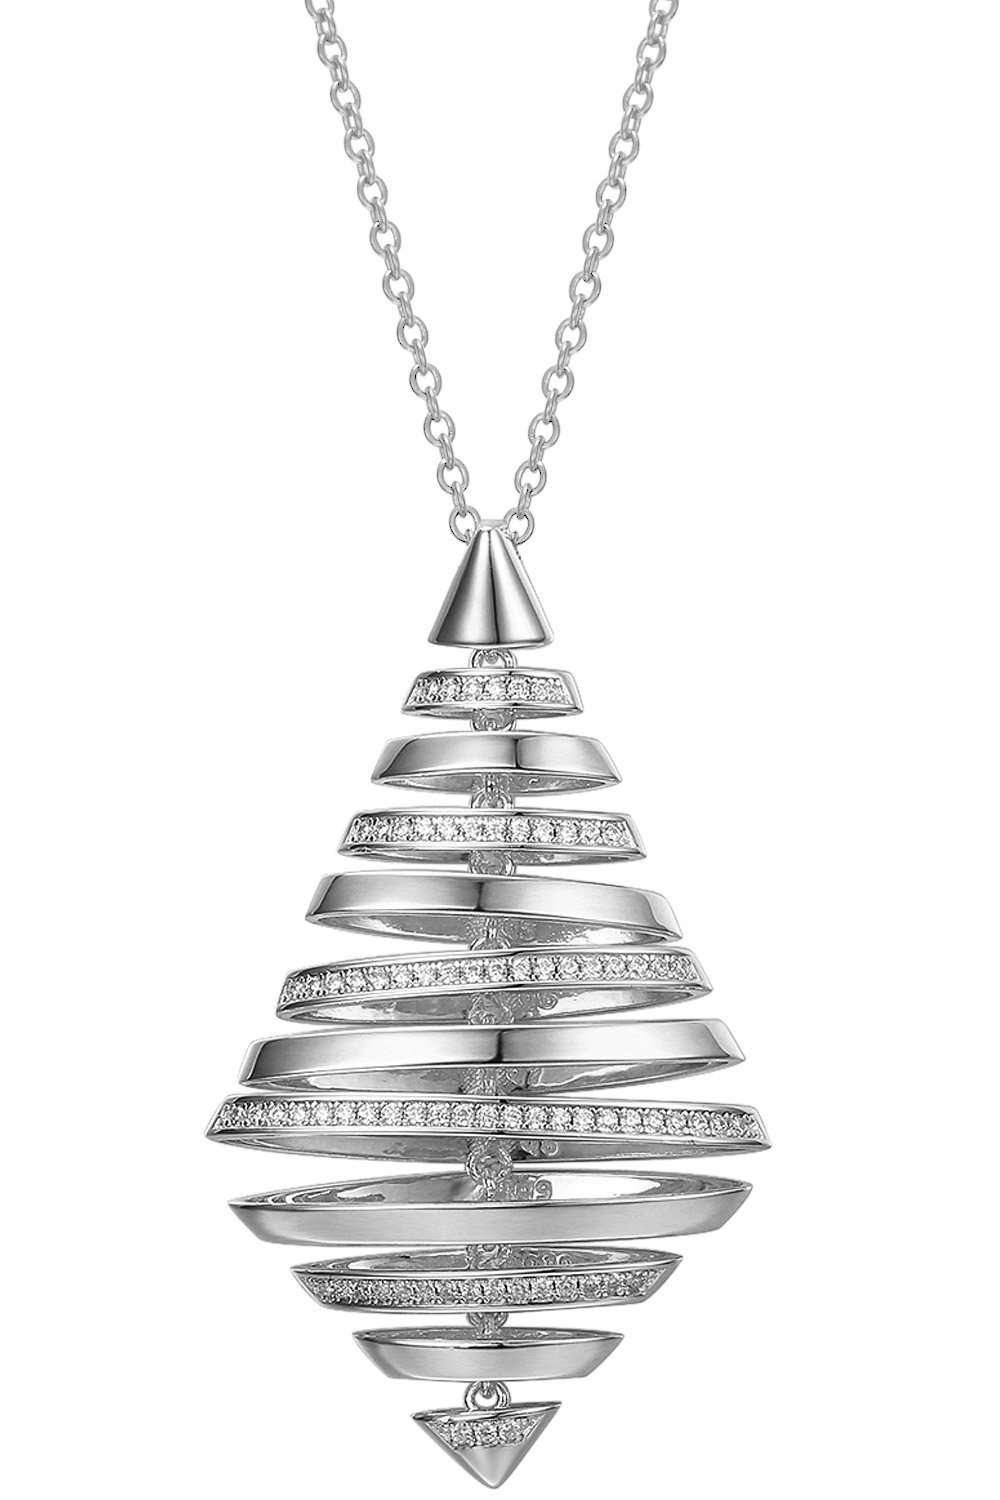 bei Uhrcenter: IUN Silver Couture PS01119A1-WW Collier New Wave Silber 925 Zirkonia - Schmuck